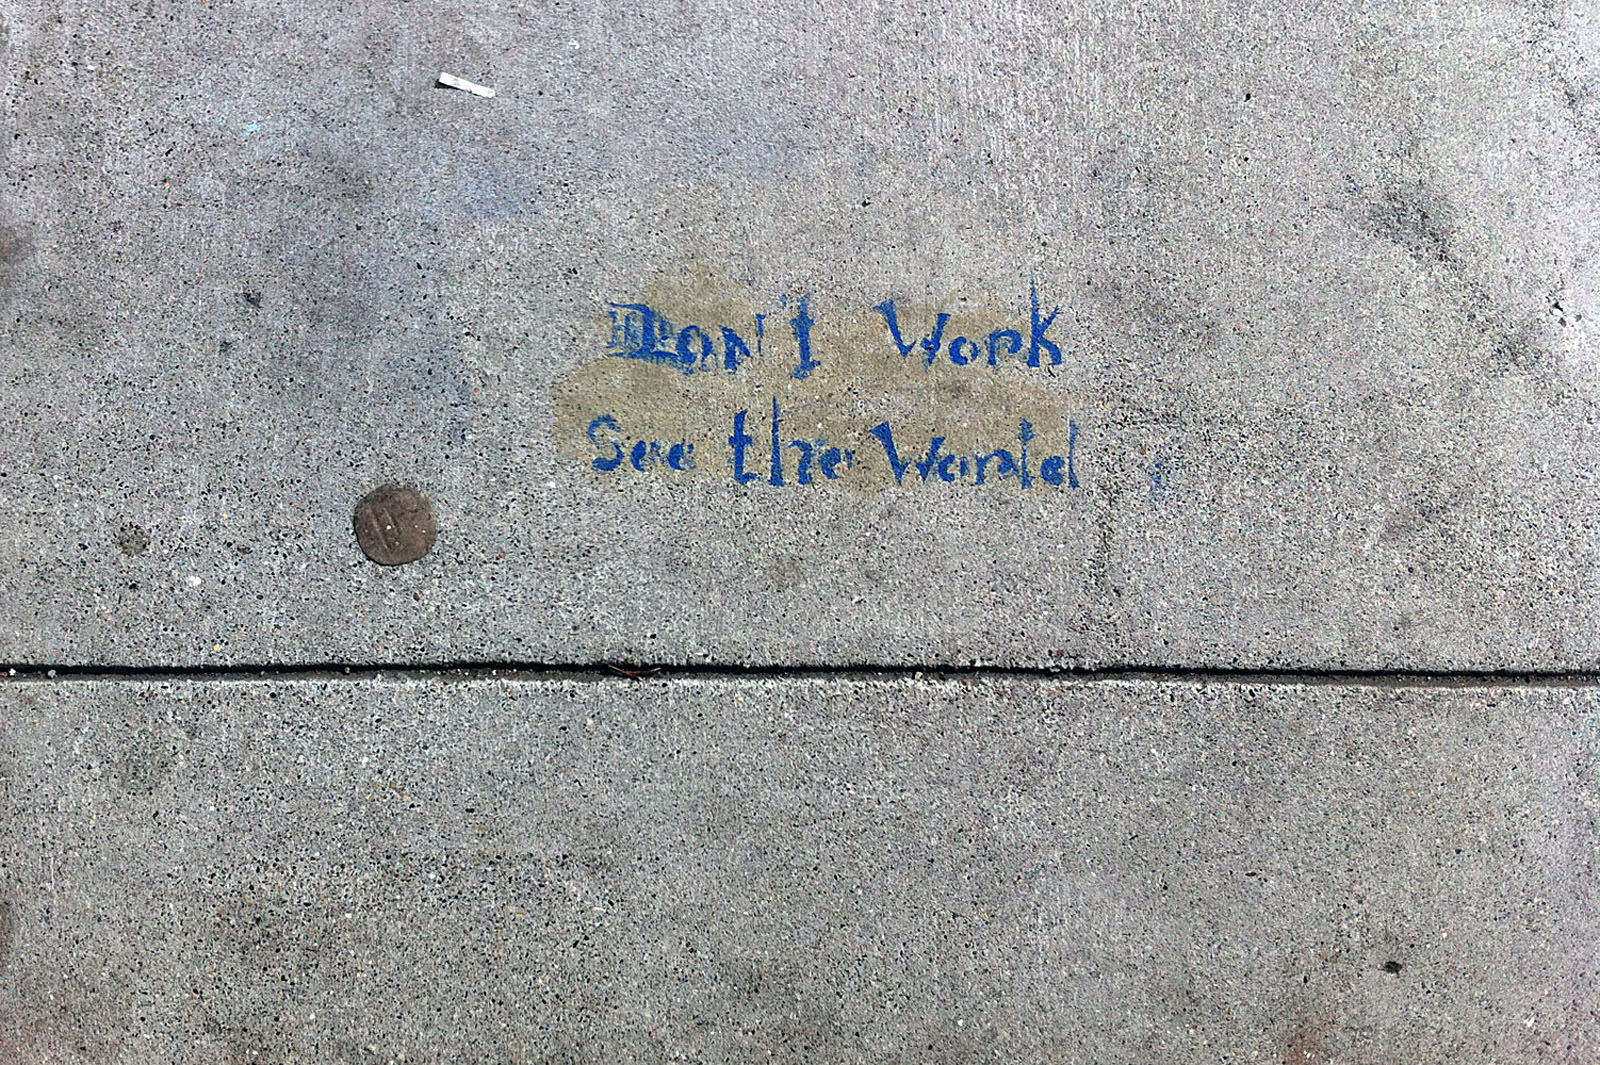 Don't Work, Says the Sidewalk